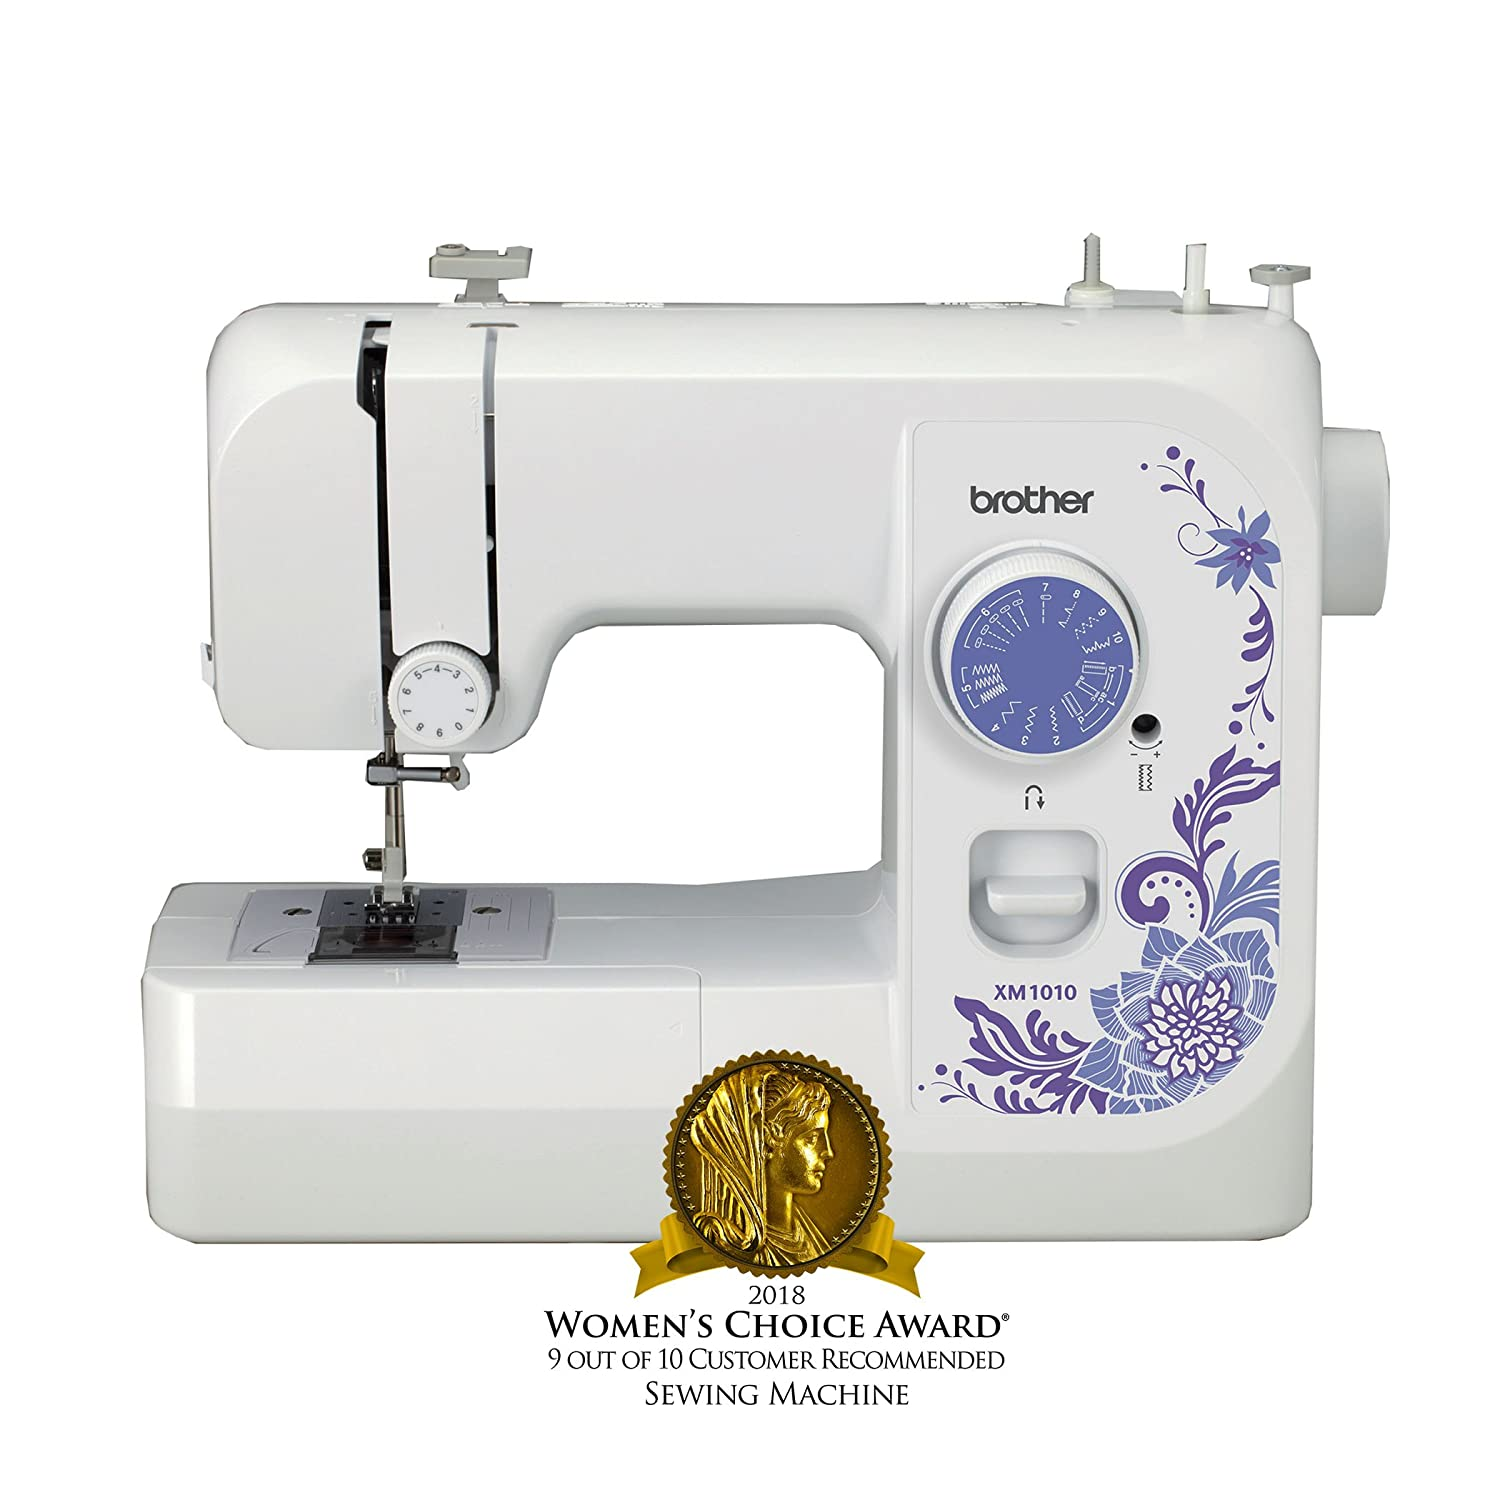 Amazon.com: Brother Sewing Machine, XM1010, 10-Stitch Sewing Machine,  Portable Sewing Machine, 10 Built-in Stitches, 4 Included Sewing Feet,  25-Year Limited ...